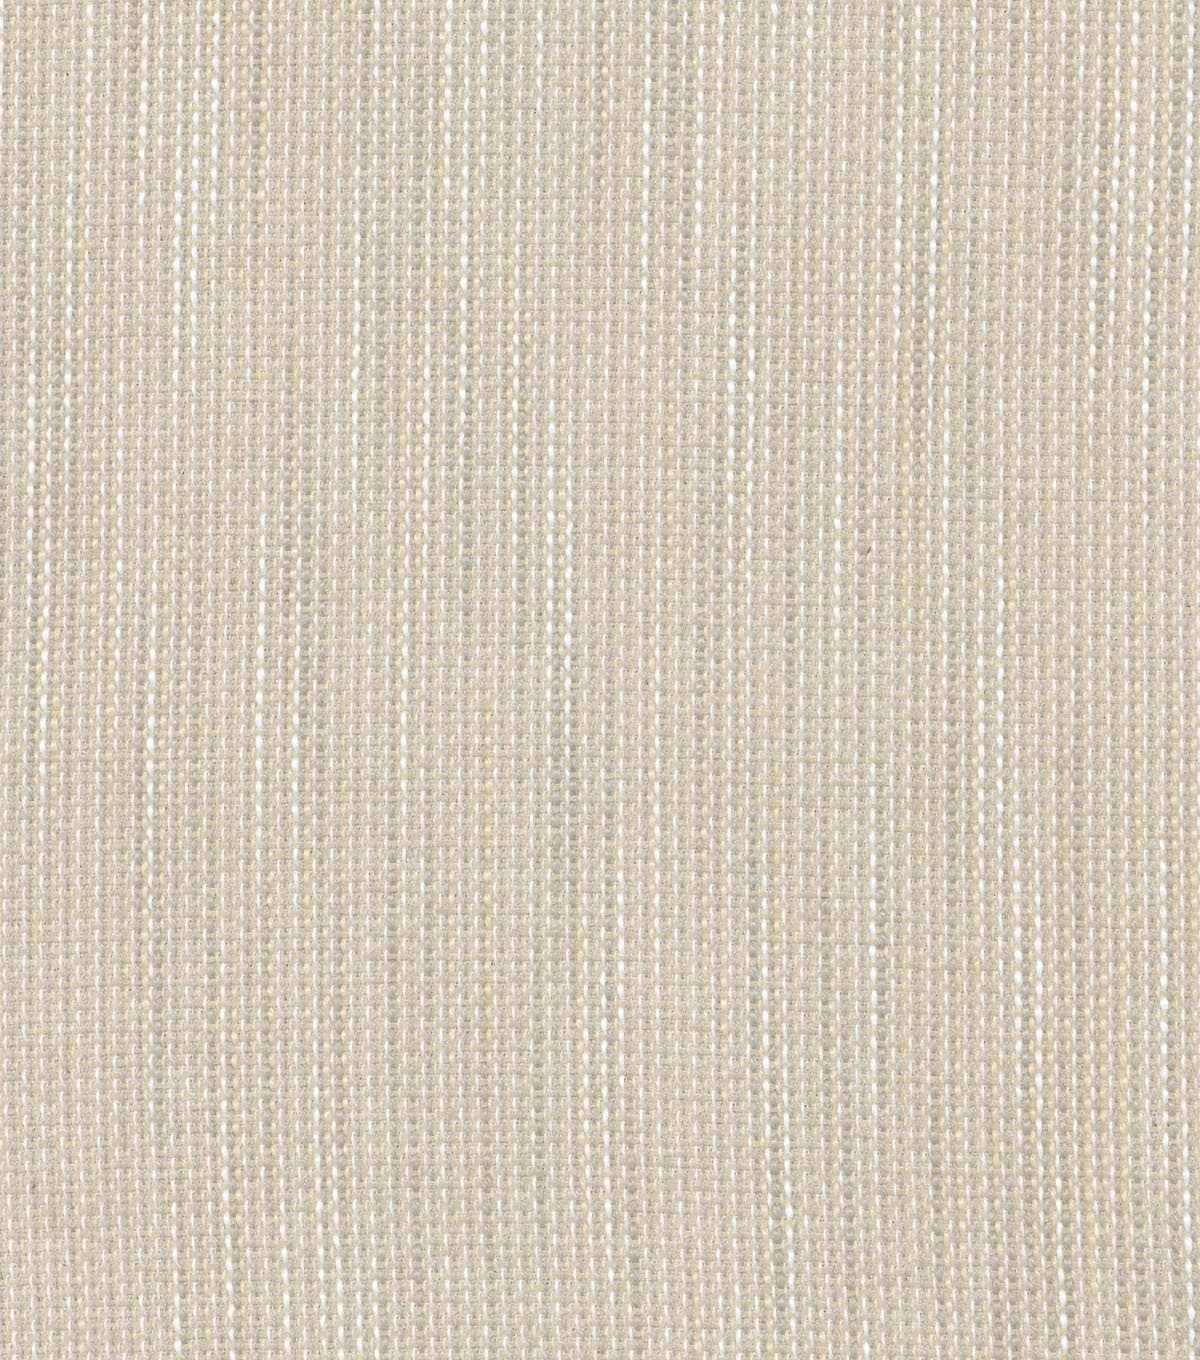 Home Decor 8\u0022x8\u0022 Swatch Fabric-Waverly Varick Pumice